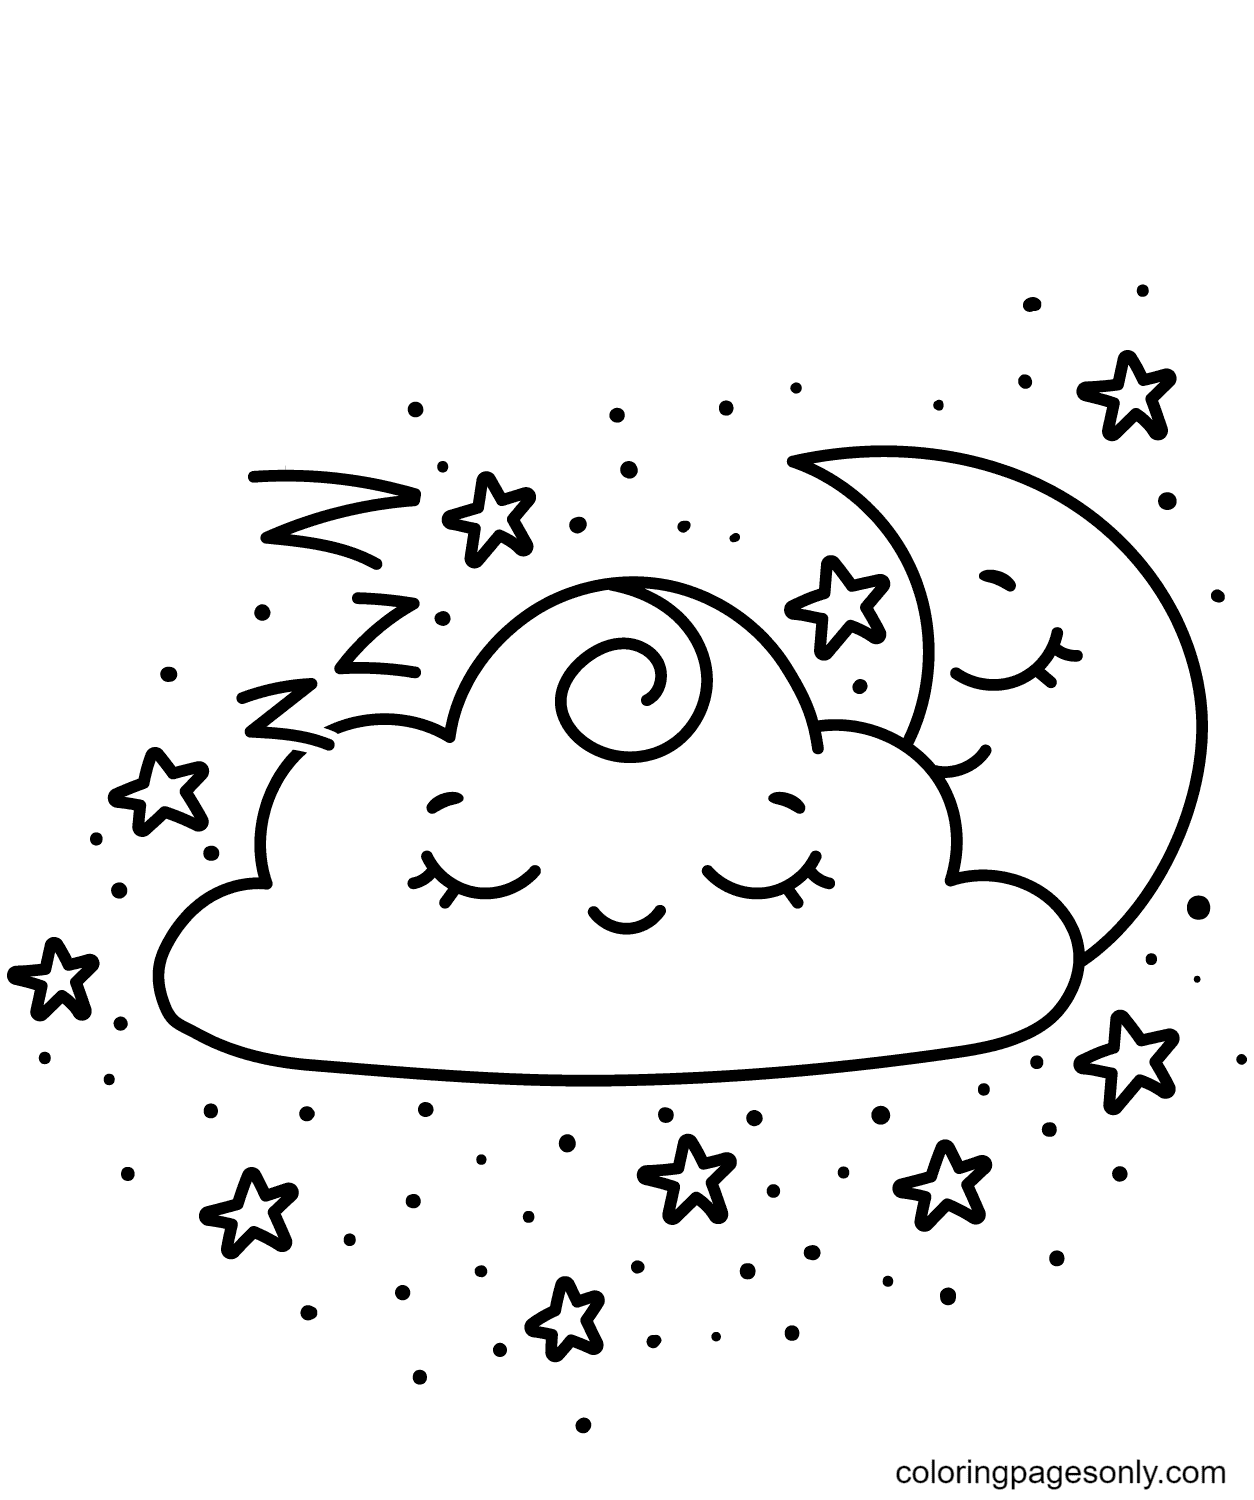 Kawaii Crescent and Cloud Coloring Page